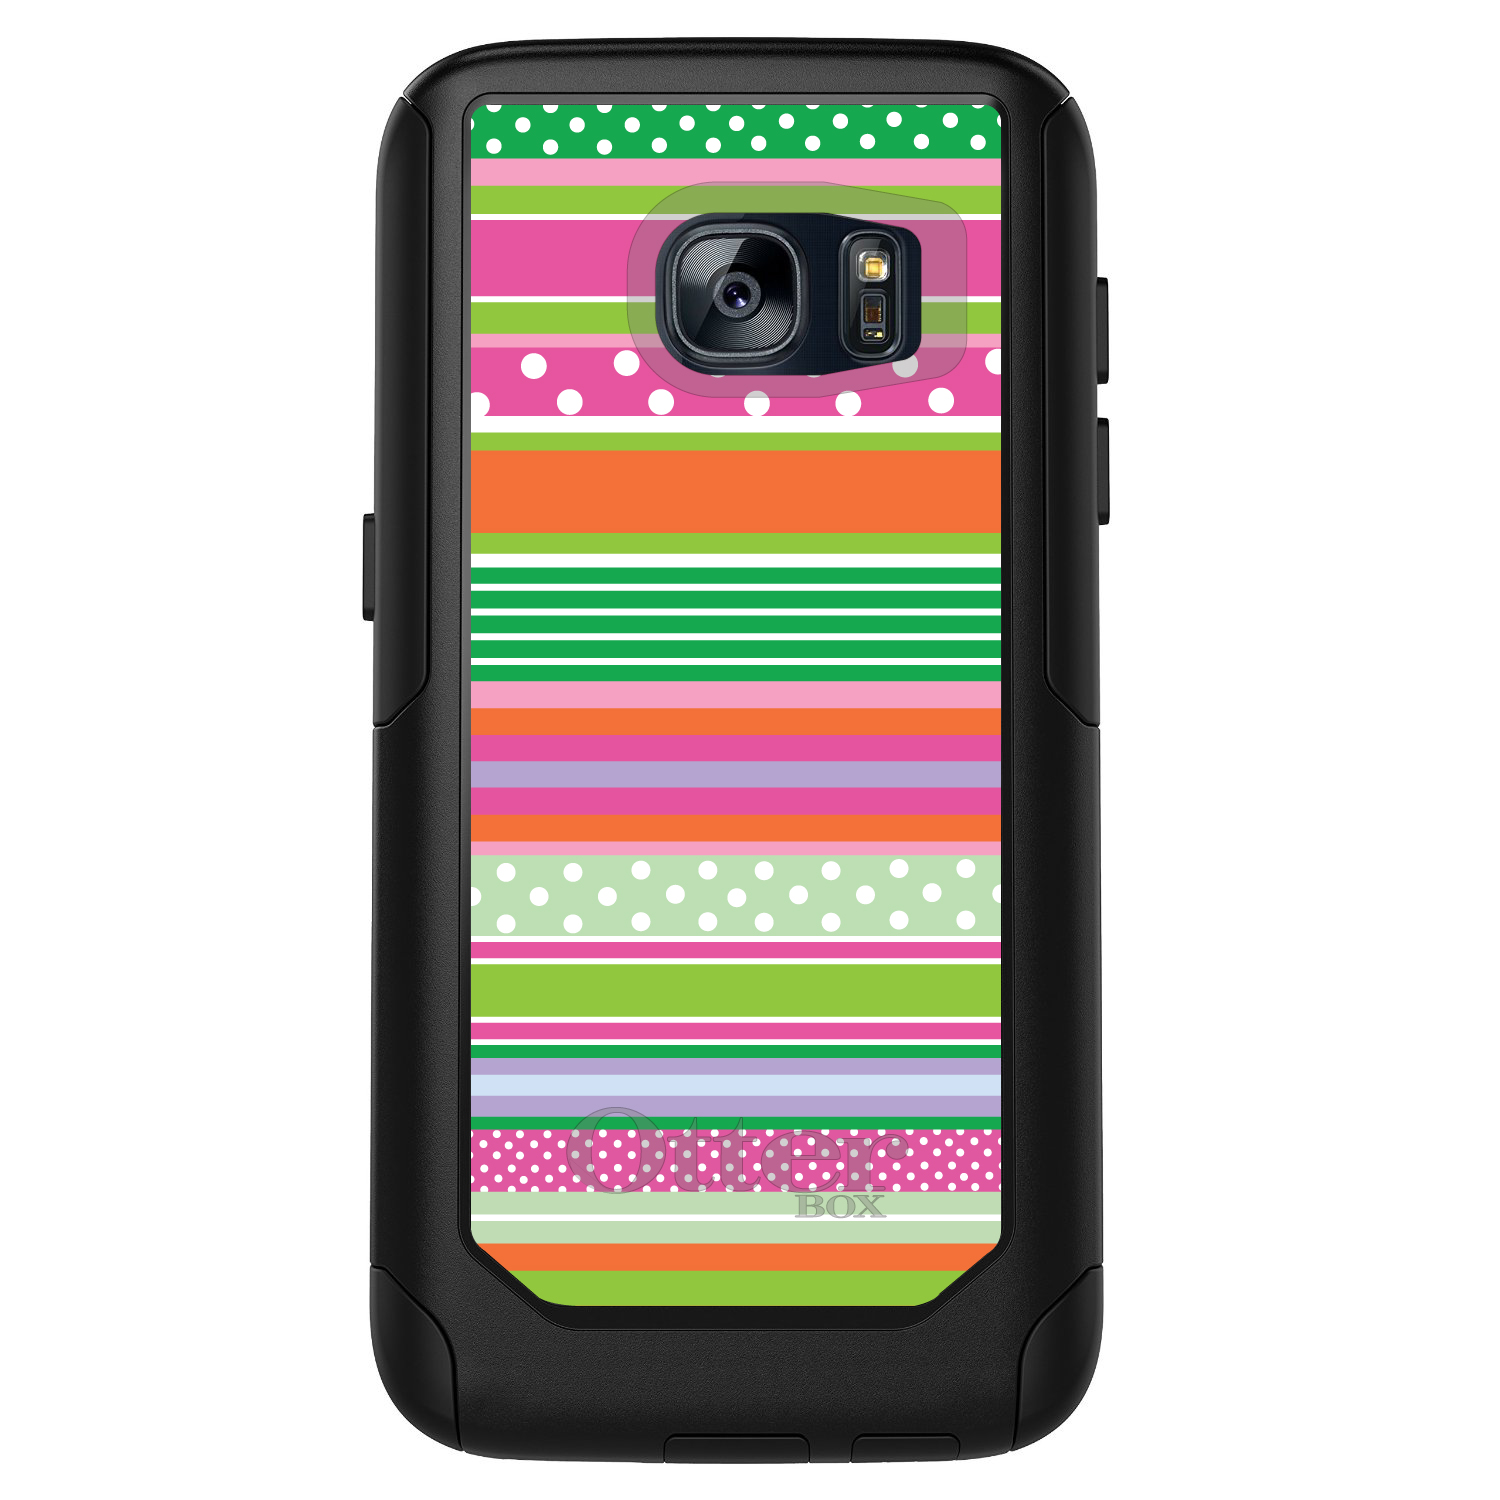 DistinctInk™ Custom Black OtterBox Commuter Series Case for Samsung Galaxy S7 - Green Pink White Stripes Polka Dots